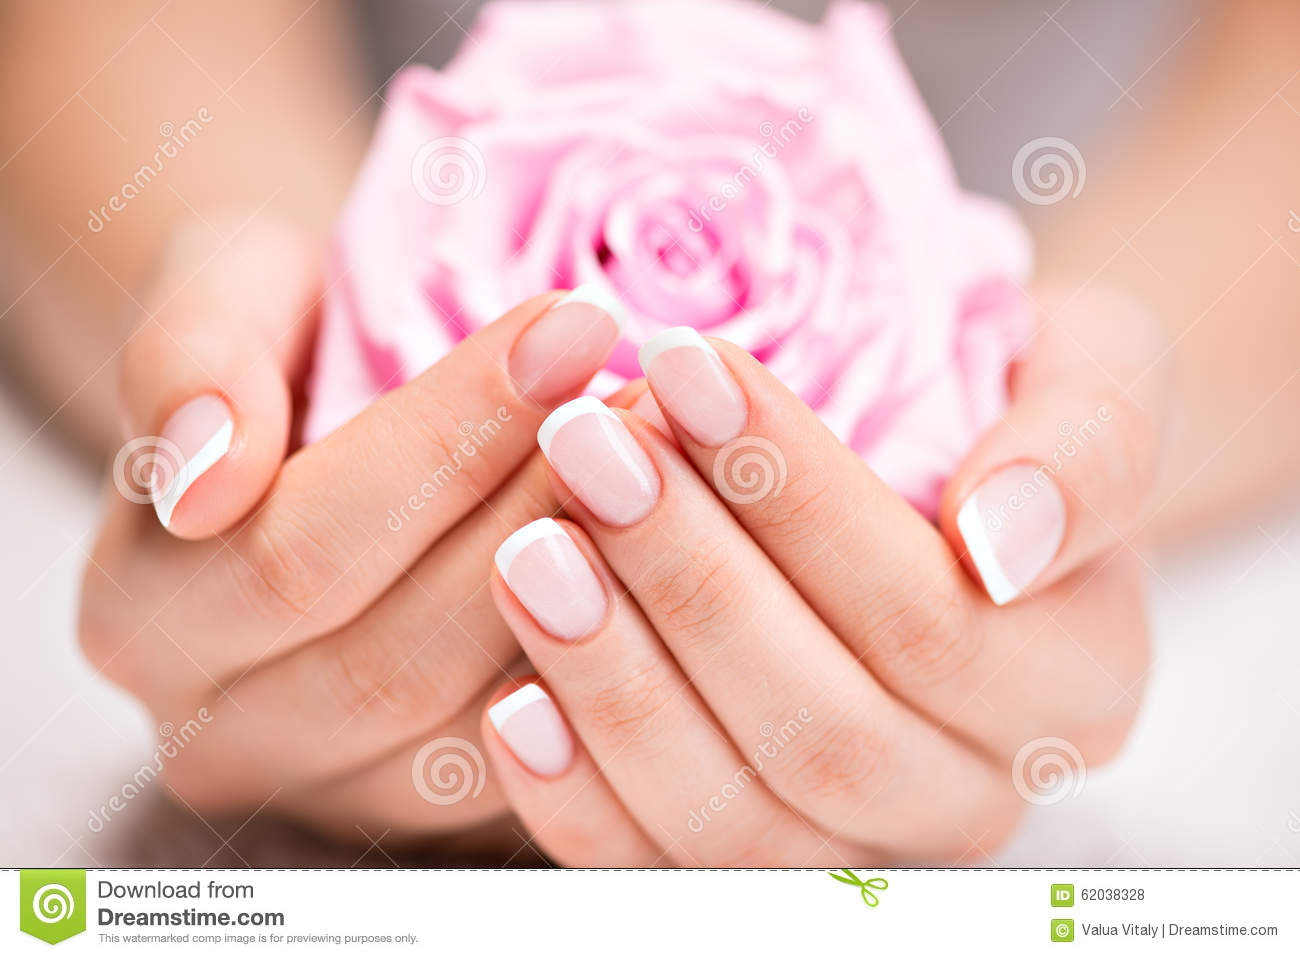 Beautiful woman s nails with french manicure and rose